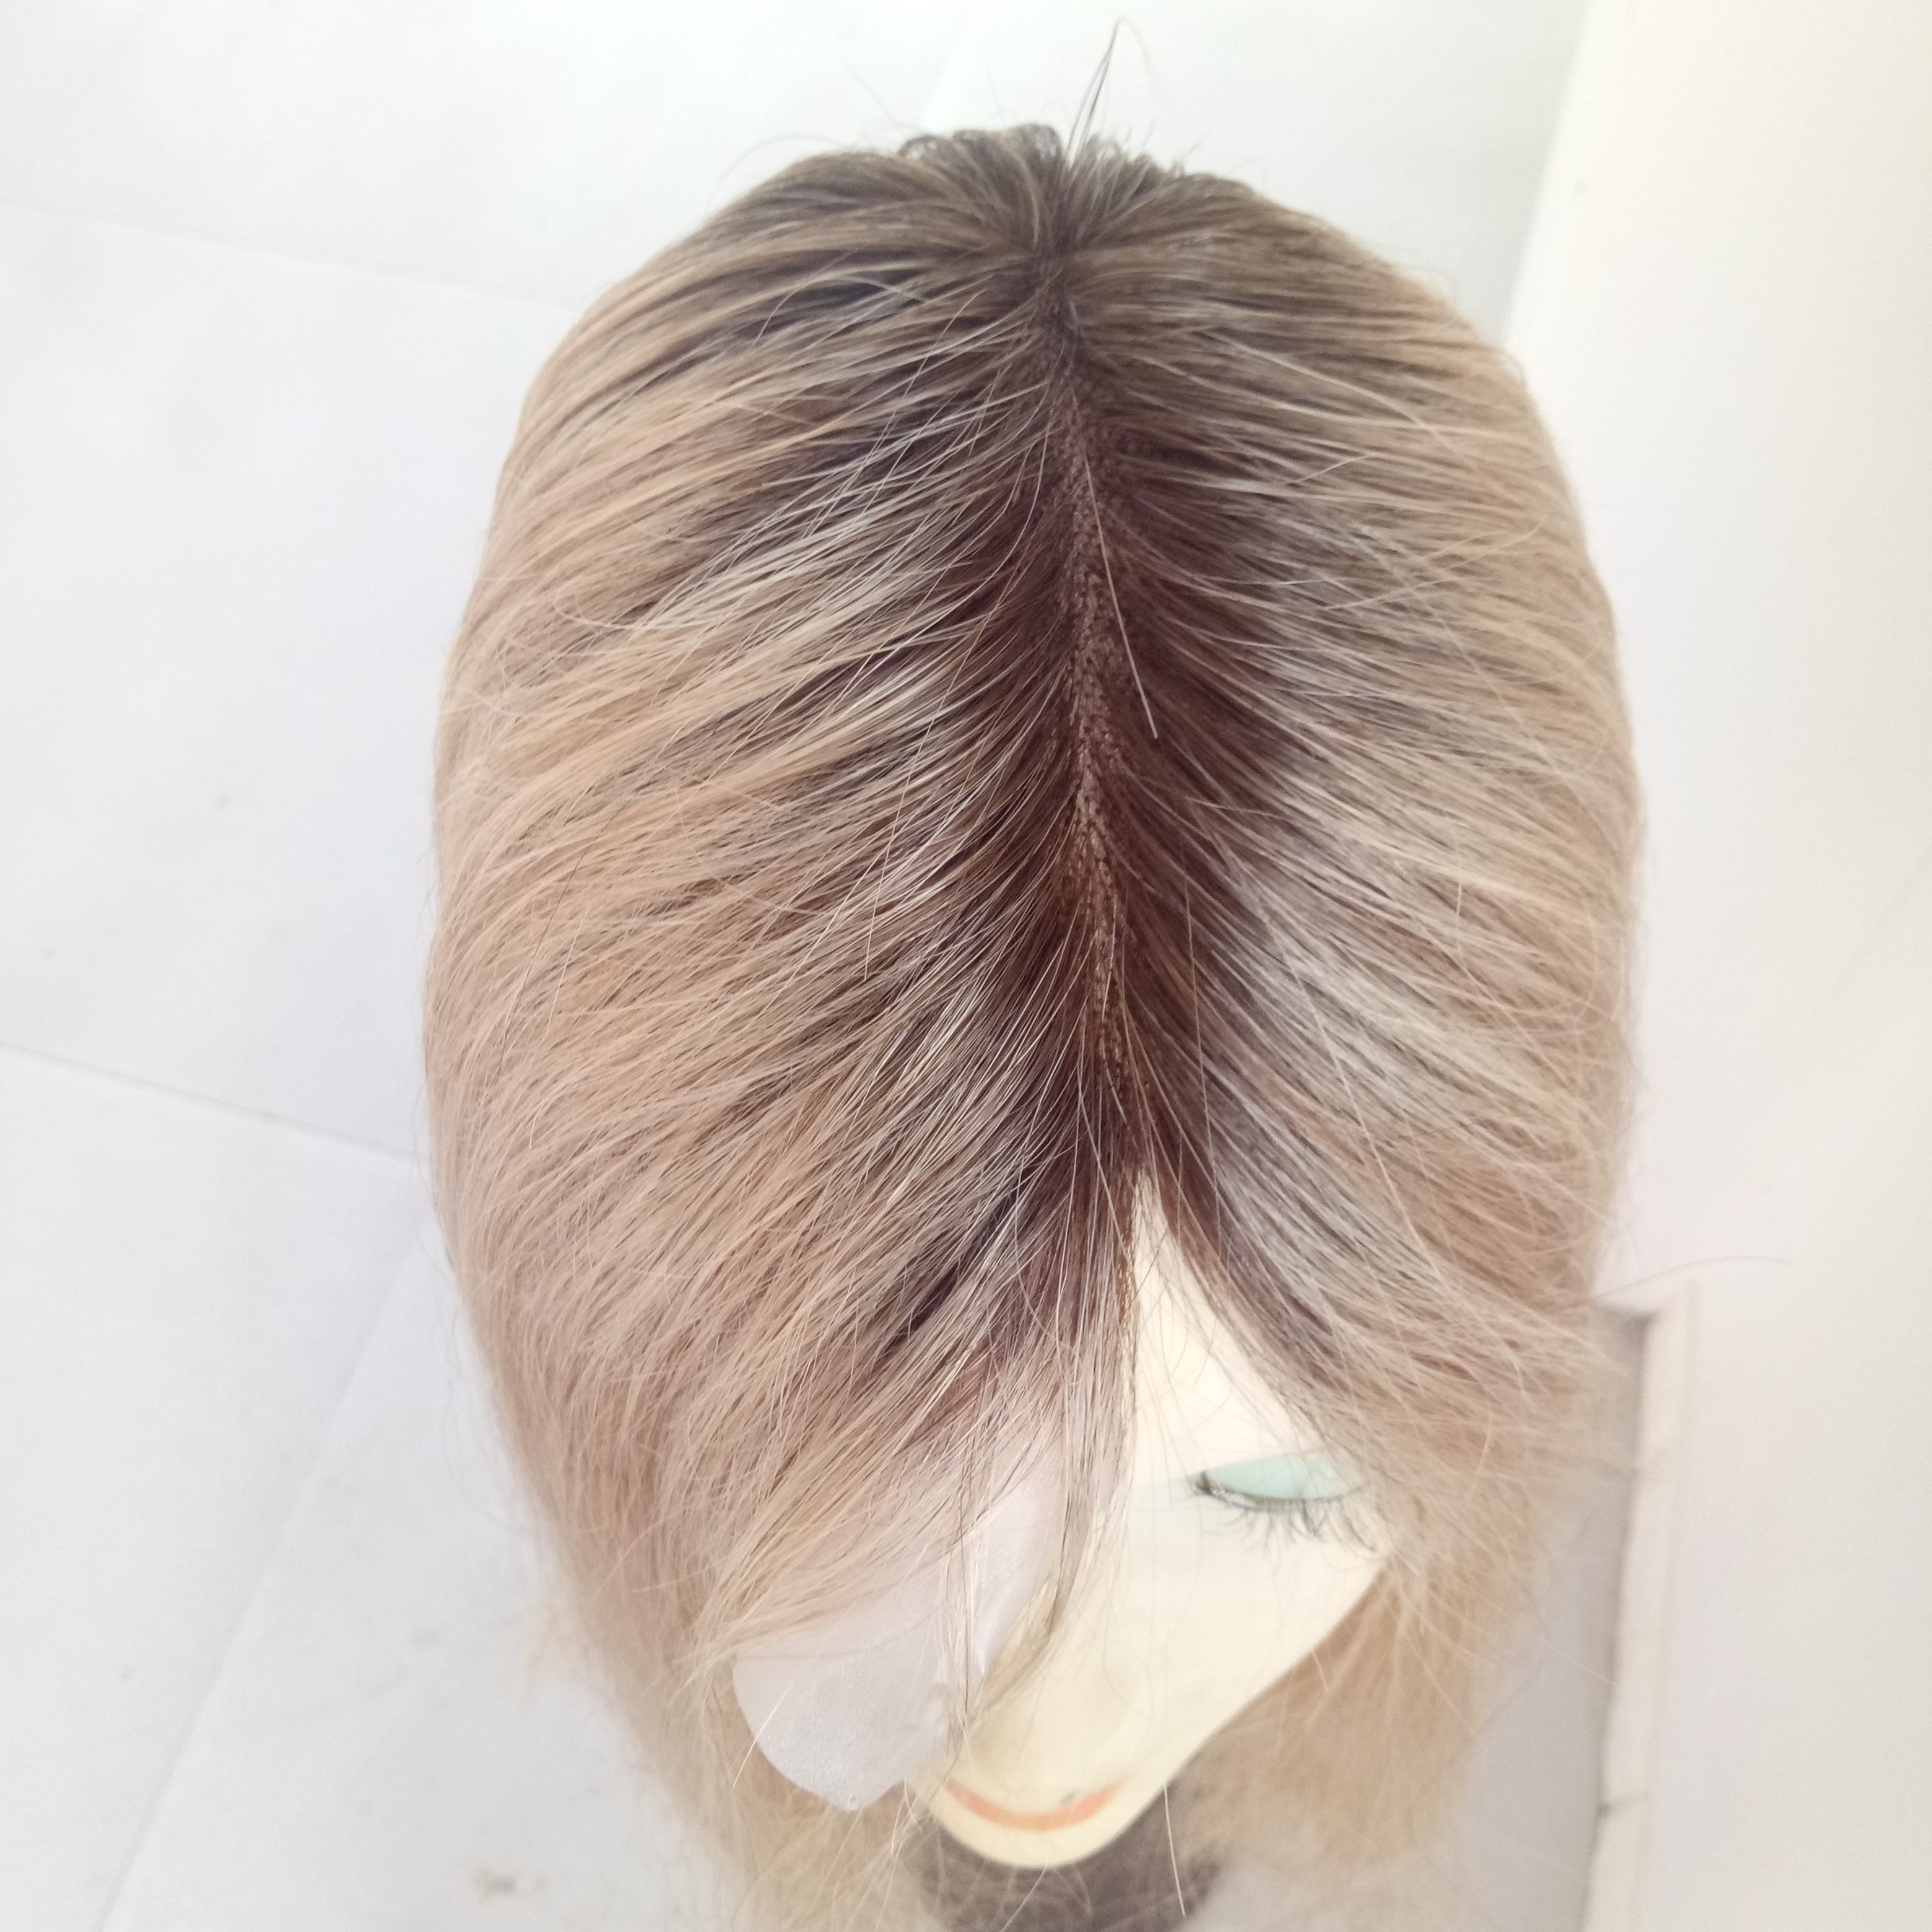 Qingdao remy human hair toupee/topper for women with long hair human hair toupee